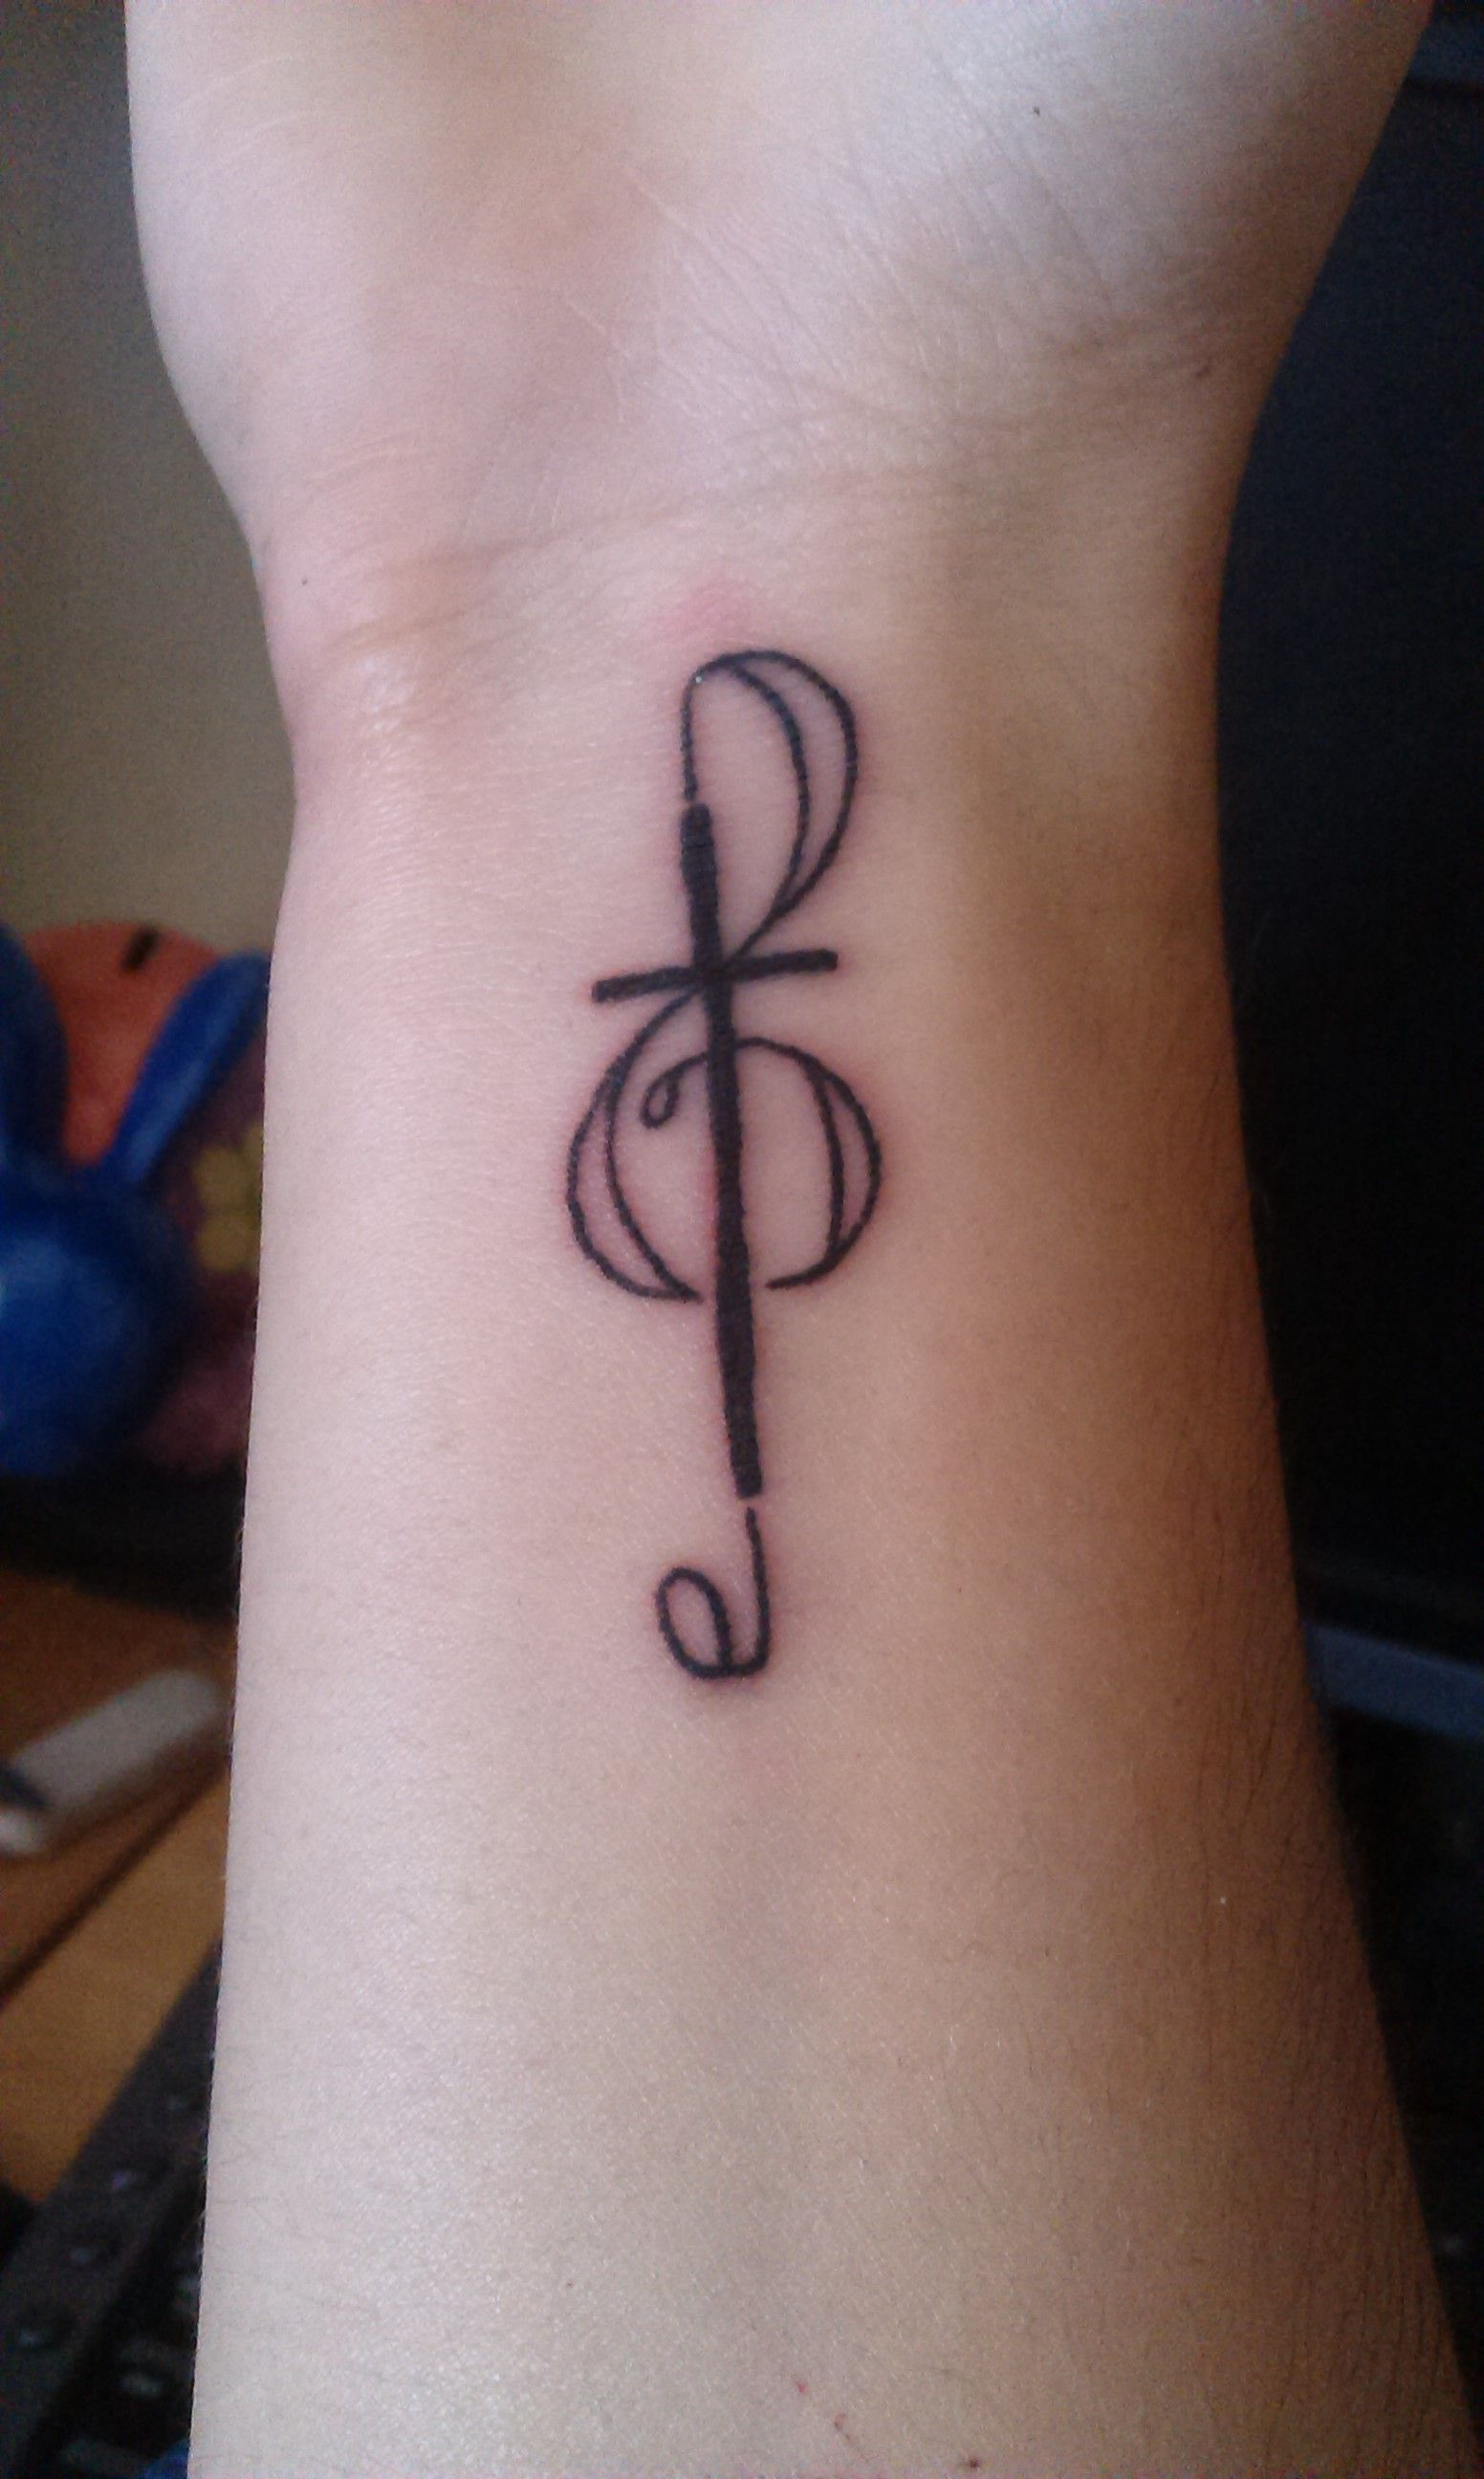 my tattoo mix of a music note and a cross to represent music and rh pinterest com au Christian Music Tattoos Music Arm Tattoos